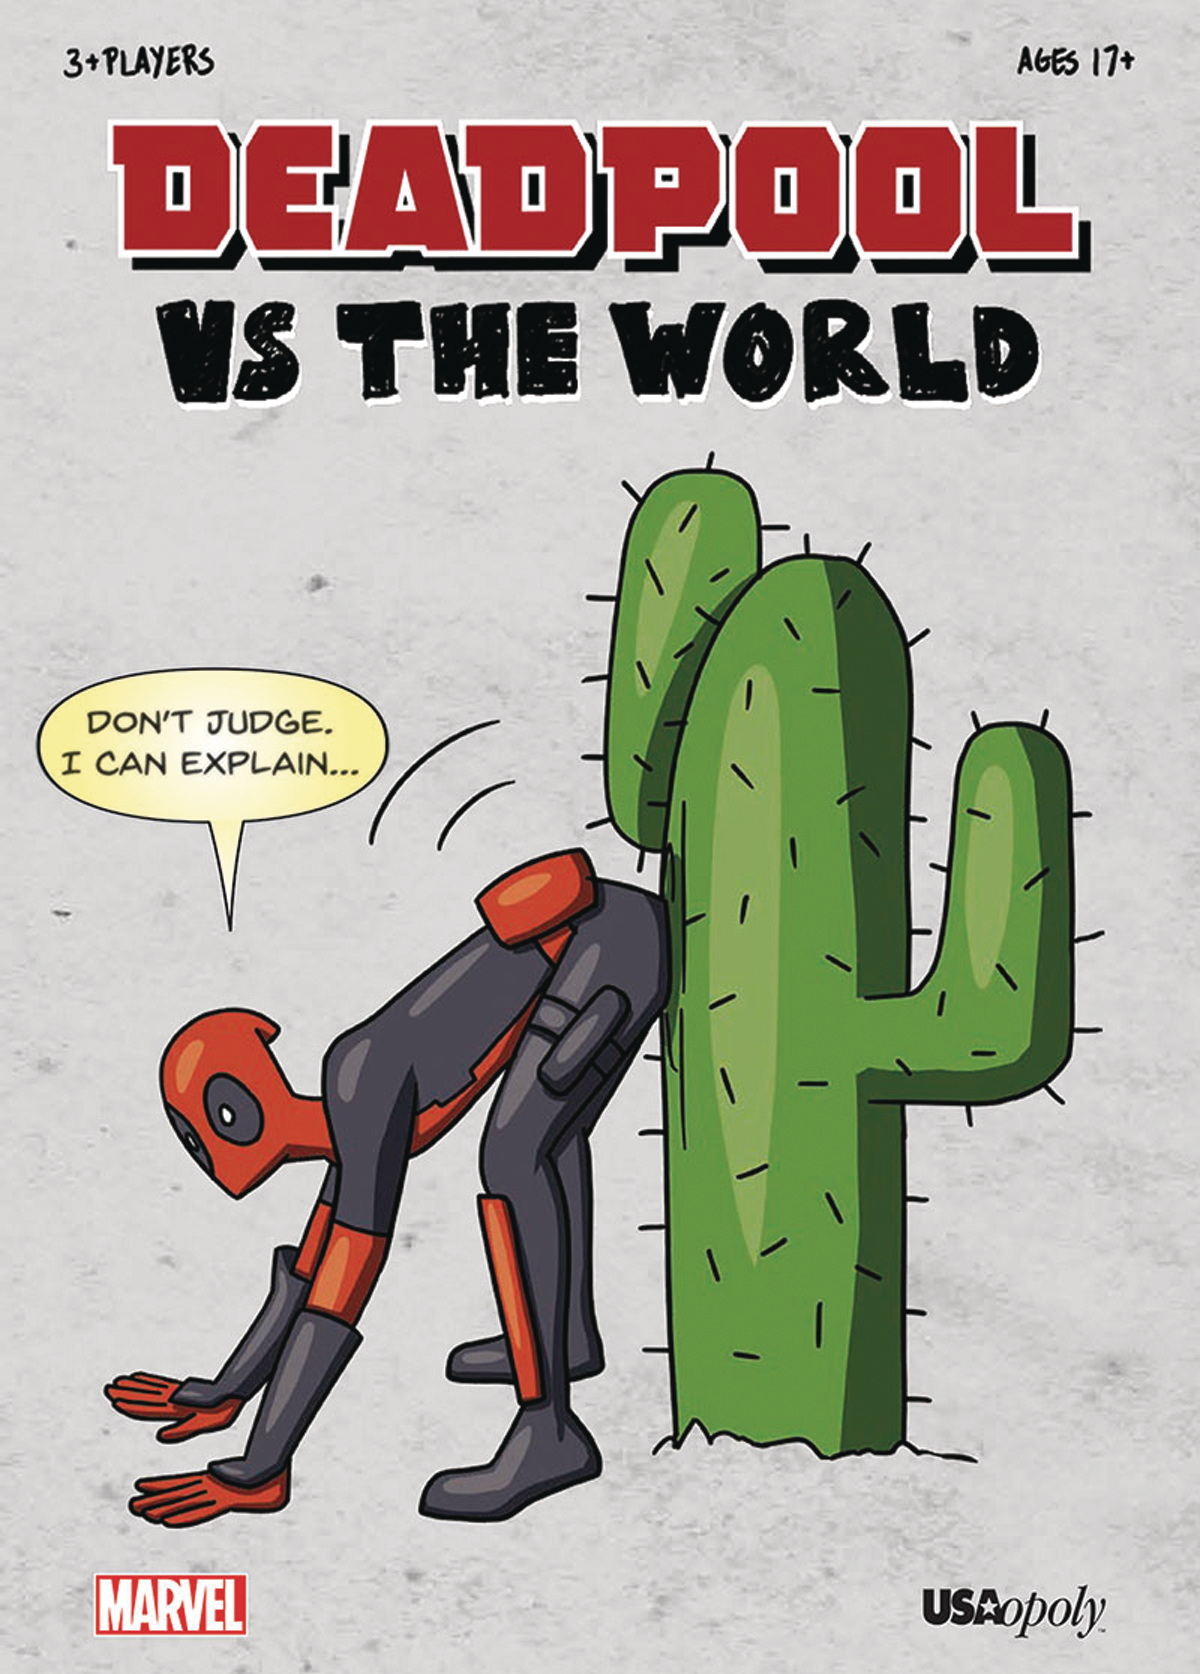 DEADPOOL VS WORLD PARTY GAME